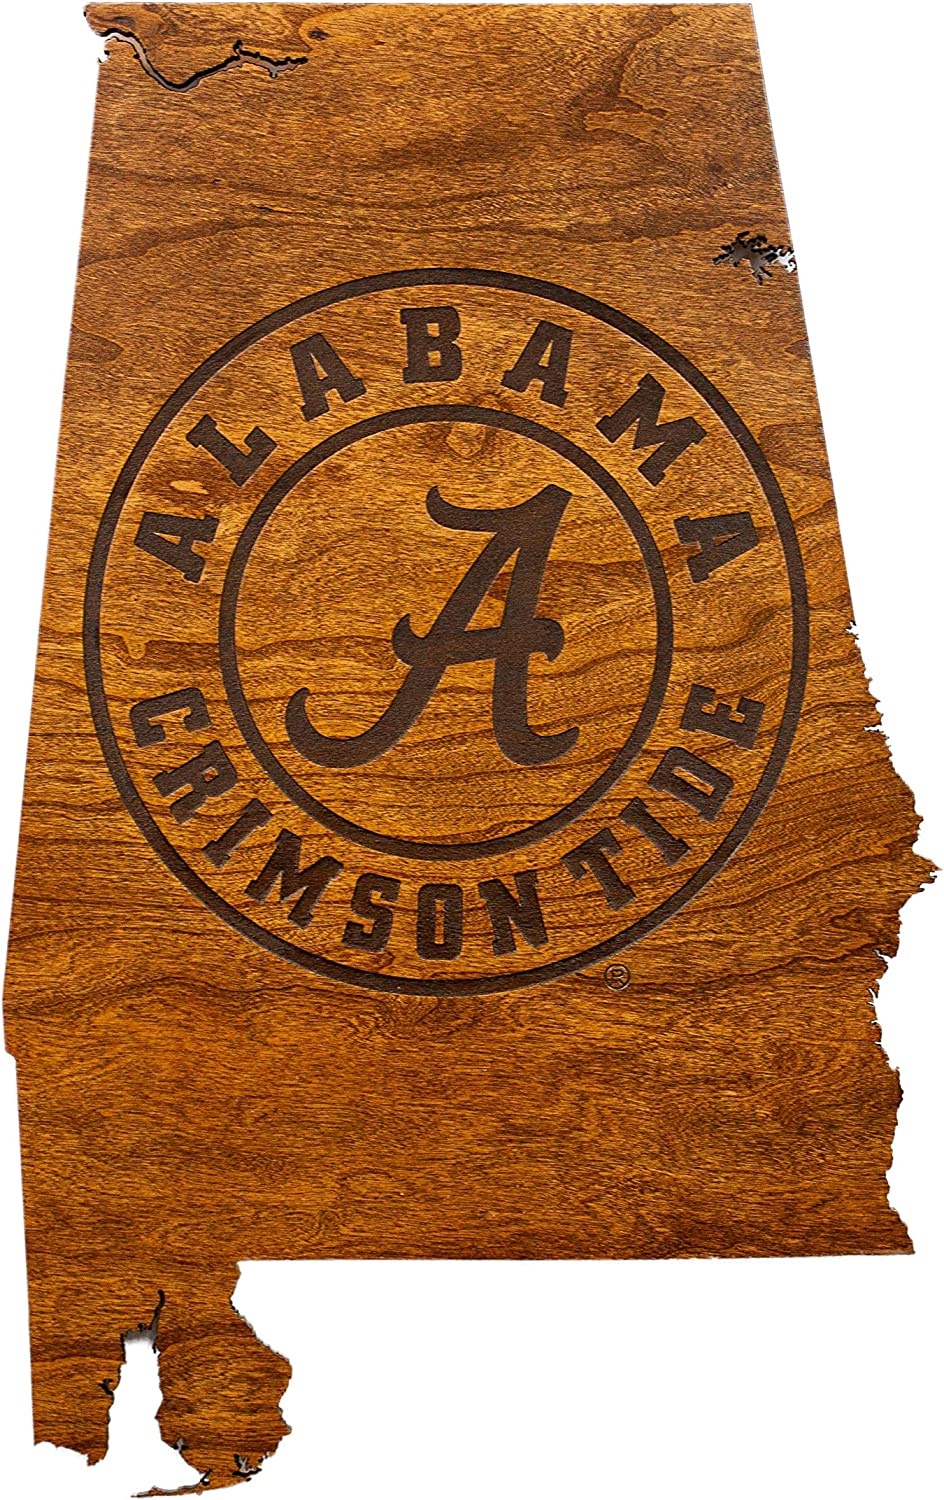 LazerEdge Officially Licensed Collegiate Wooden Wall Hanging